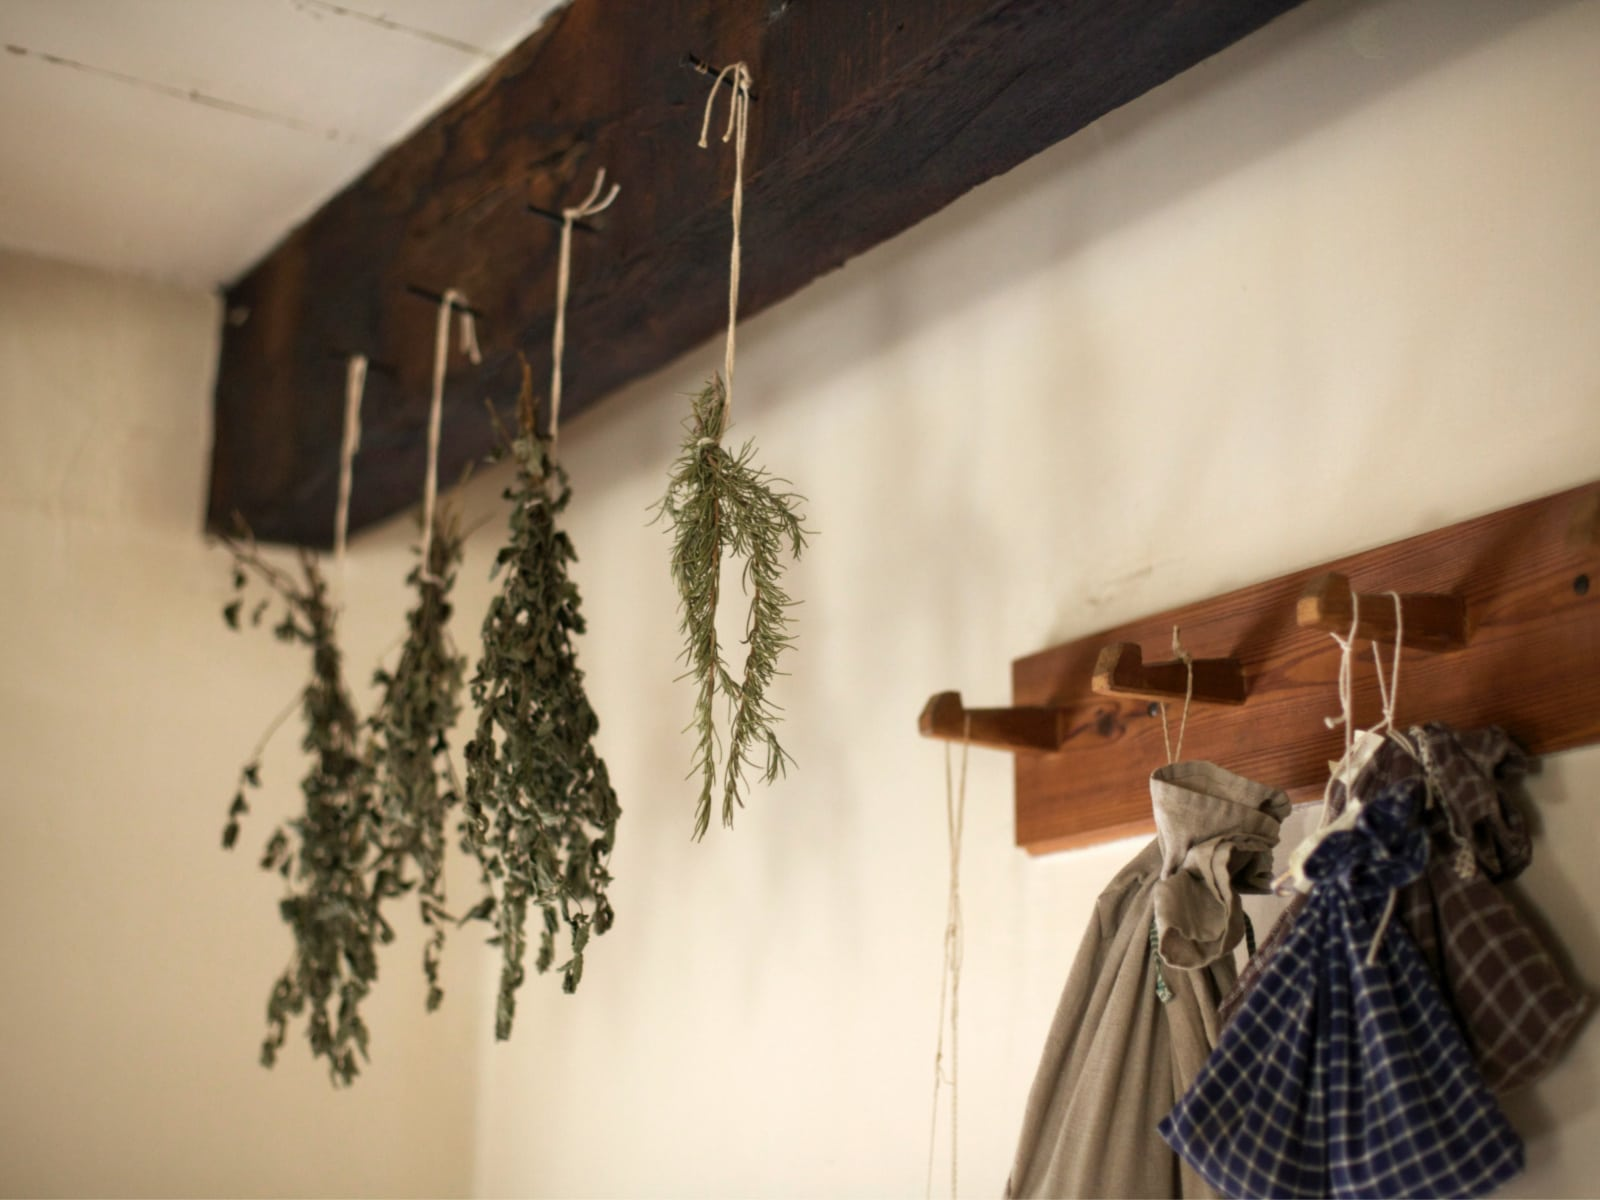 herb bundles hanging from kitchen rafter